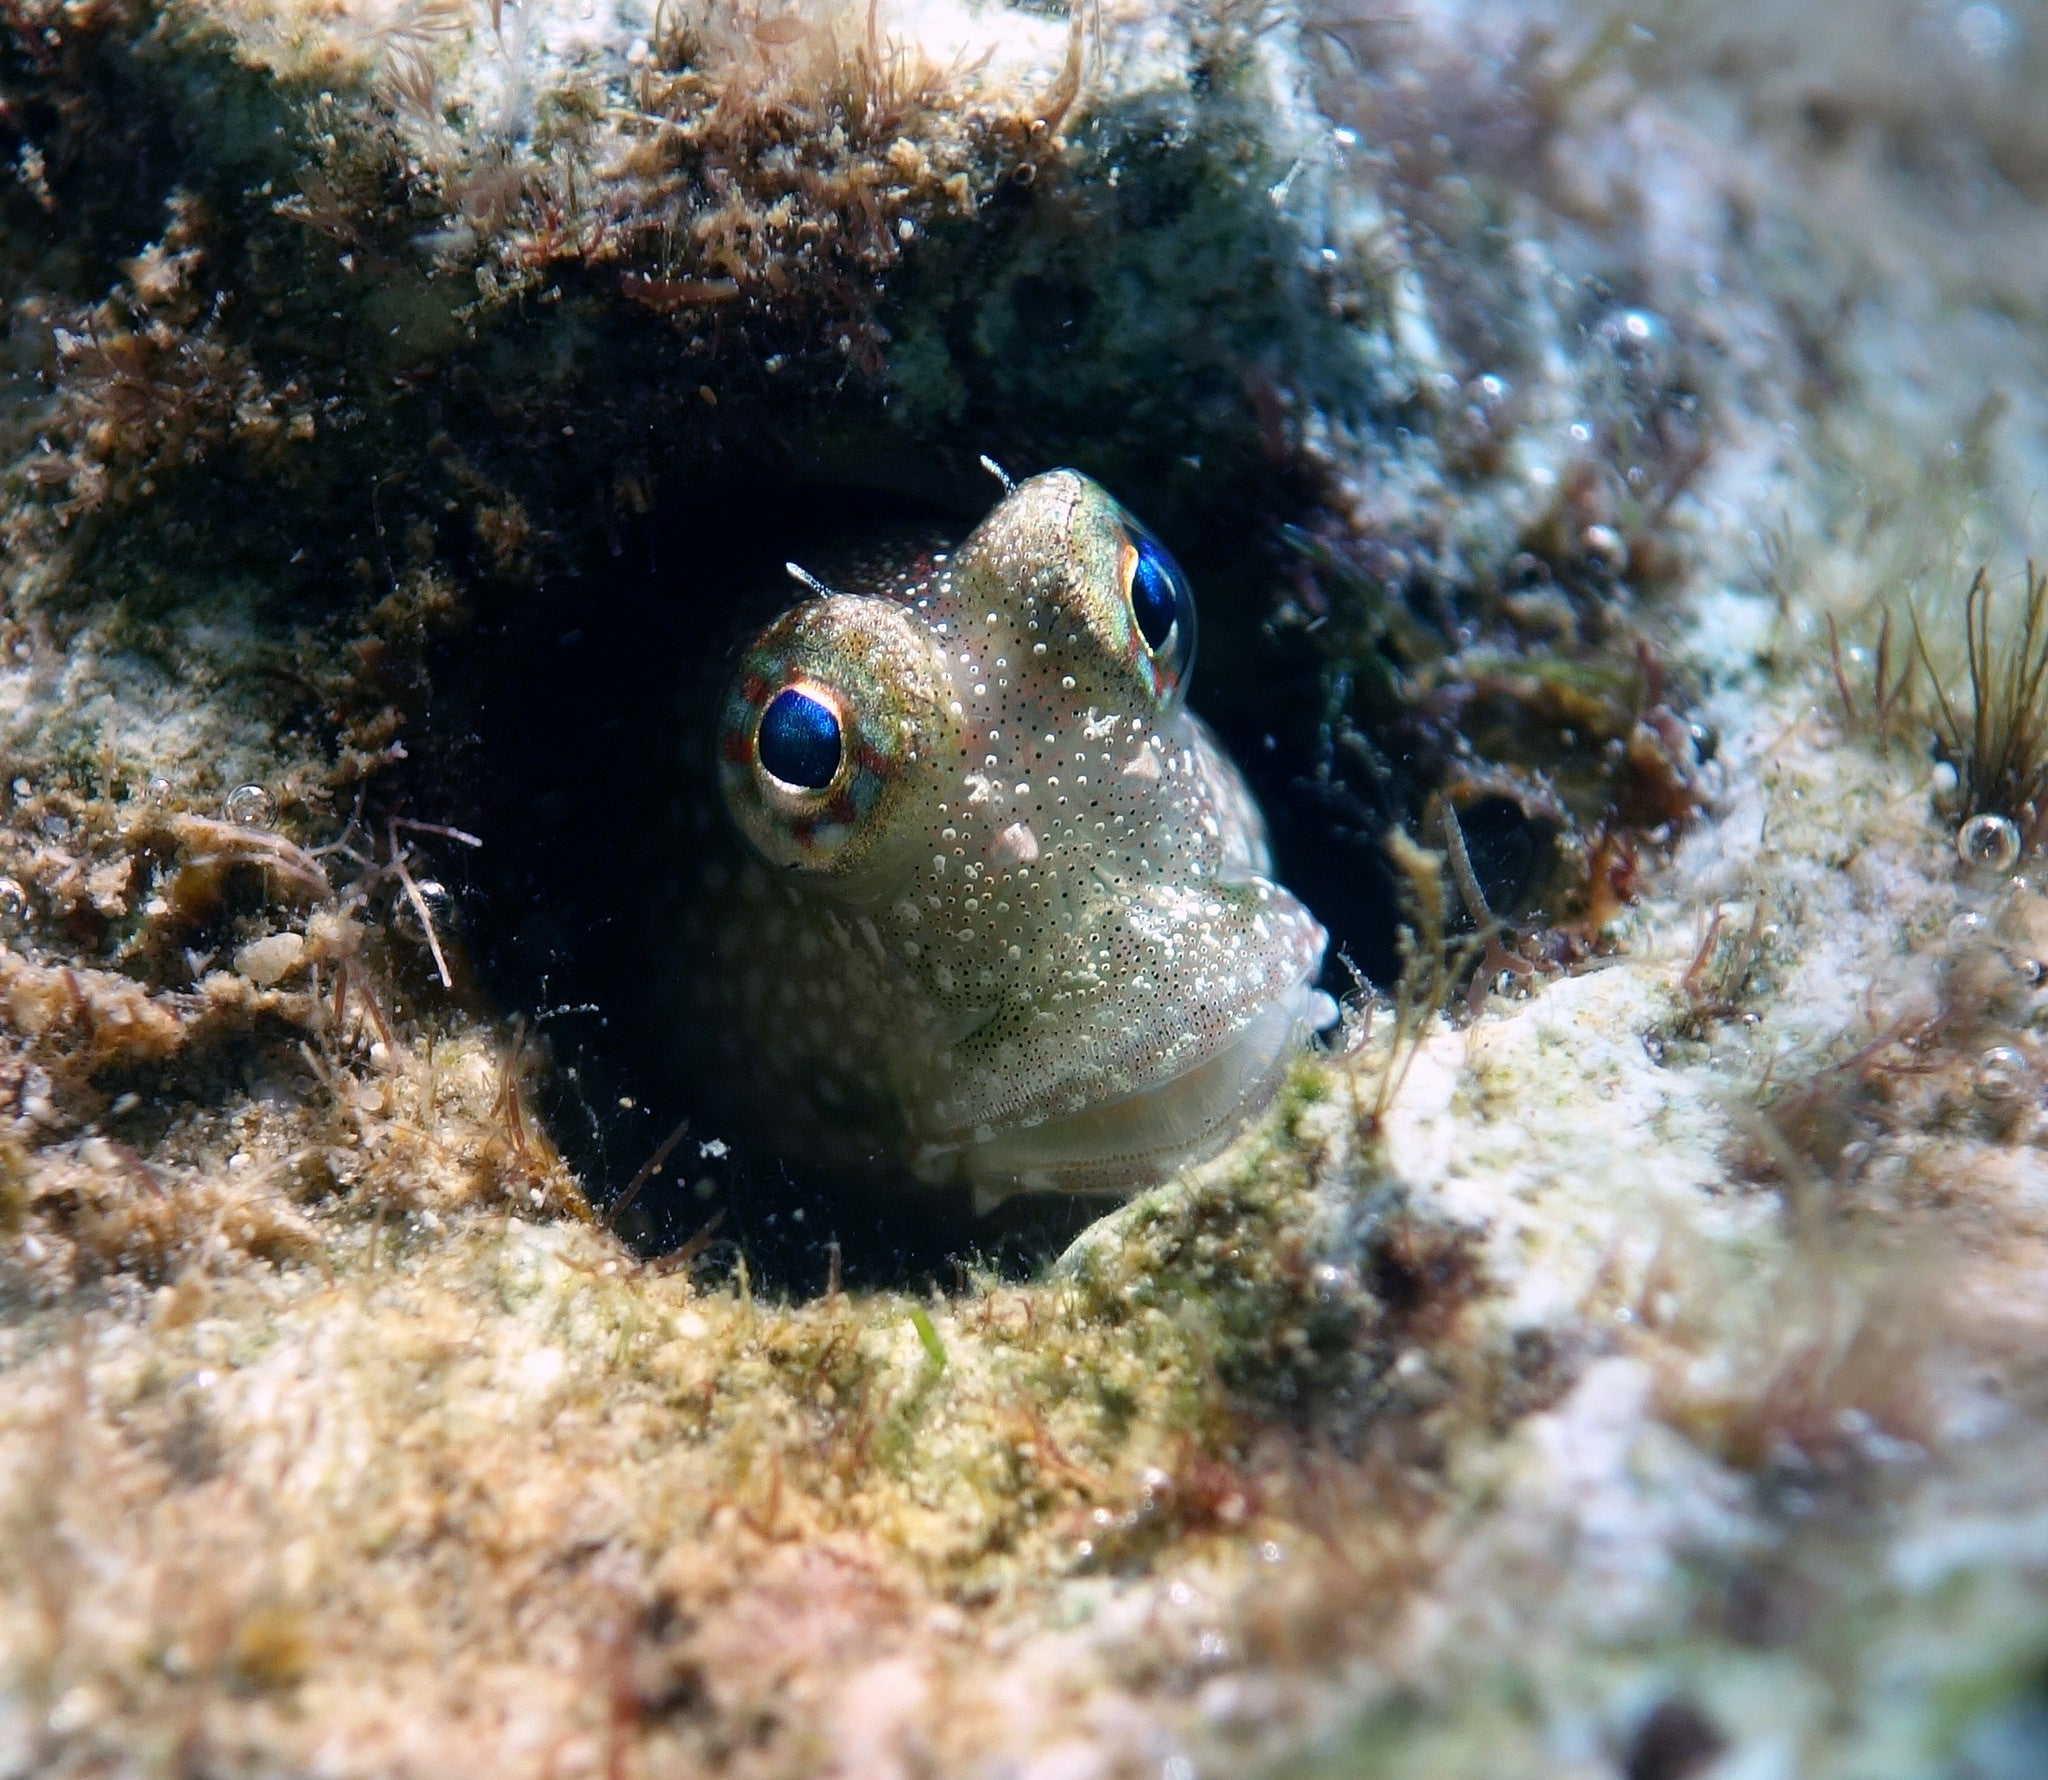 Plagued by predators in the sea, these fish are moving onto land